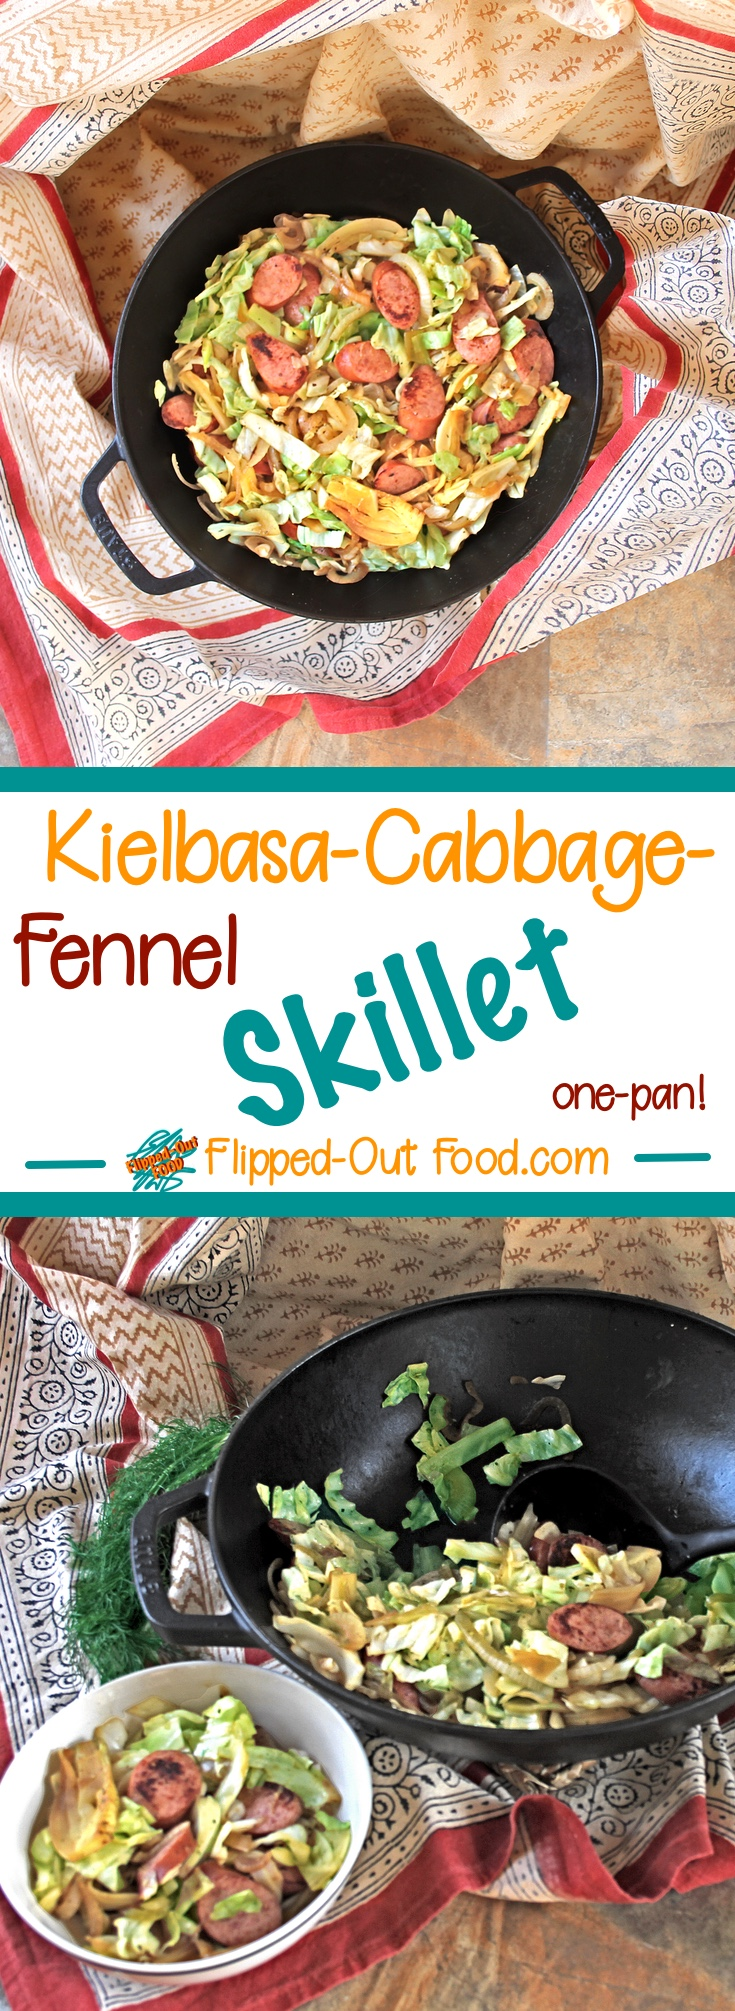 Kielbasa-Cabbage-Fennel Skillet is an easy, healthy meal that's perfect for weeknights. Meal-prep the ingredients in advance for a lightning-fast dinner! This skillet is so loaded up with healthy vegetables that you don't need to serve it with rice—you won't miss the carbs! #onepanmeal #skilletdinner #onepot #onepan #cabbage #kielbasa #fennel #onion #lowcarb #mealprep